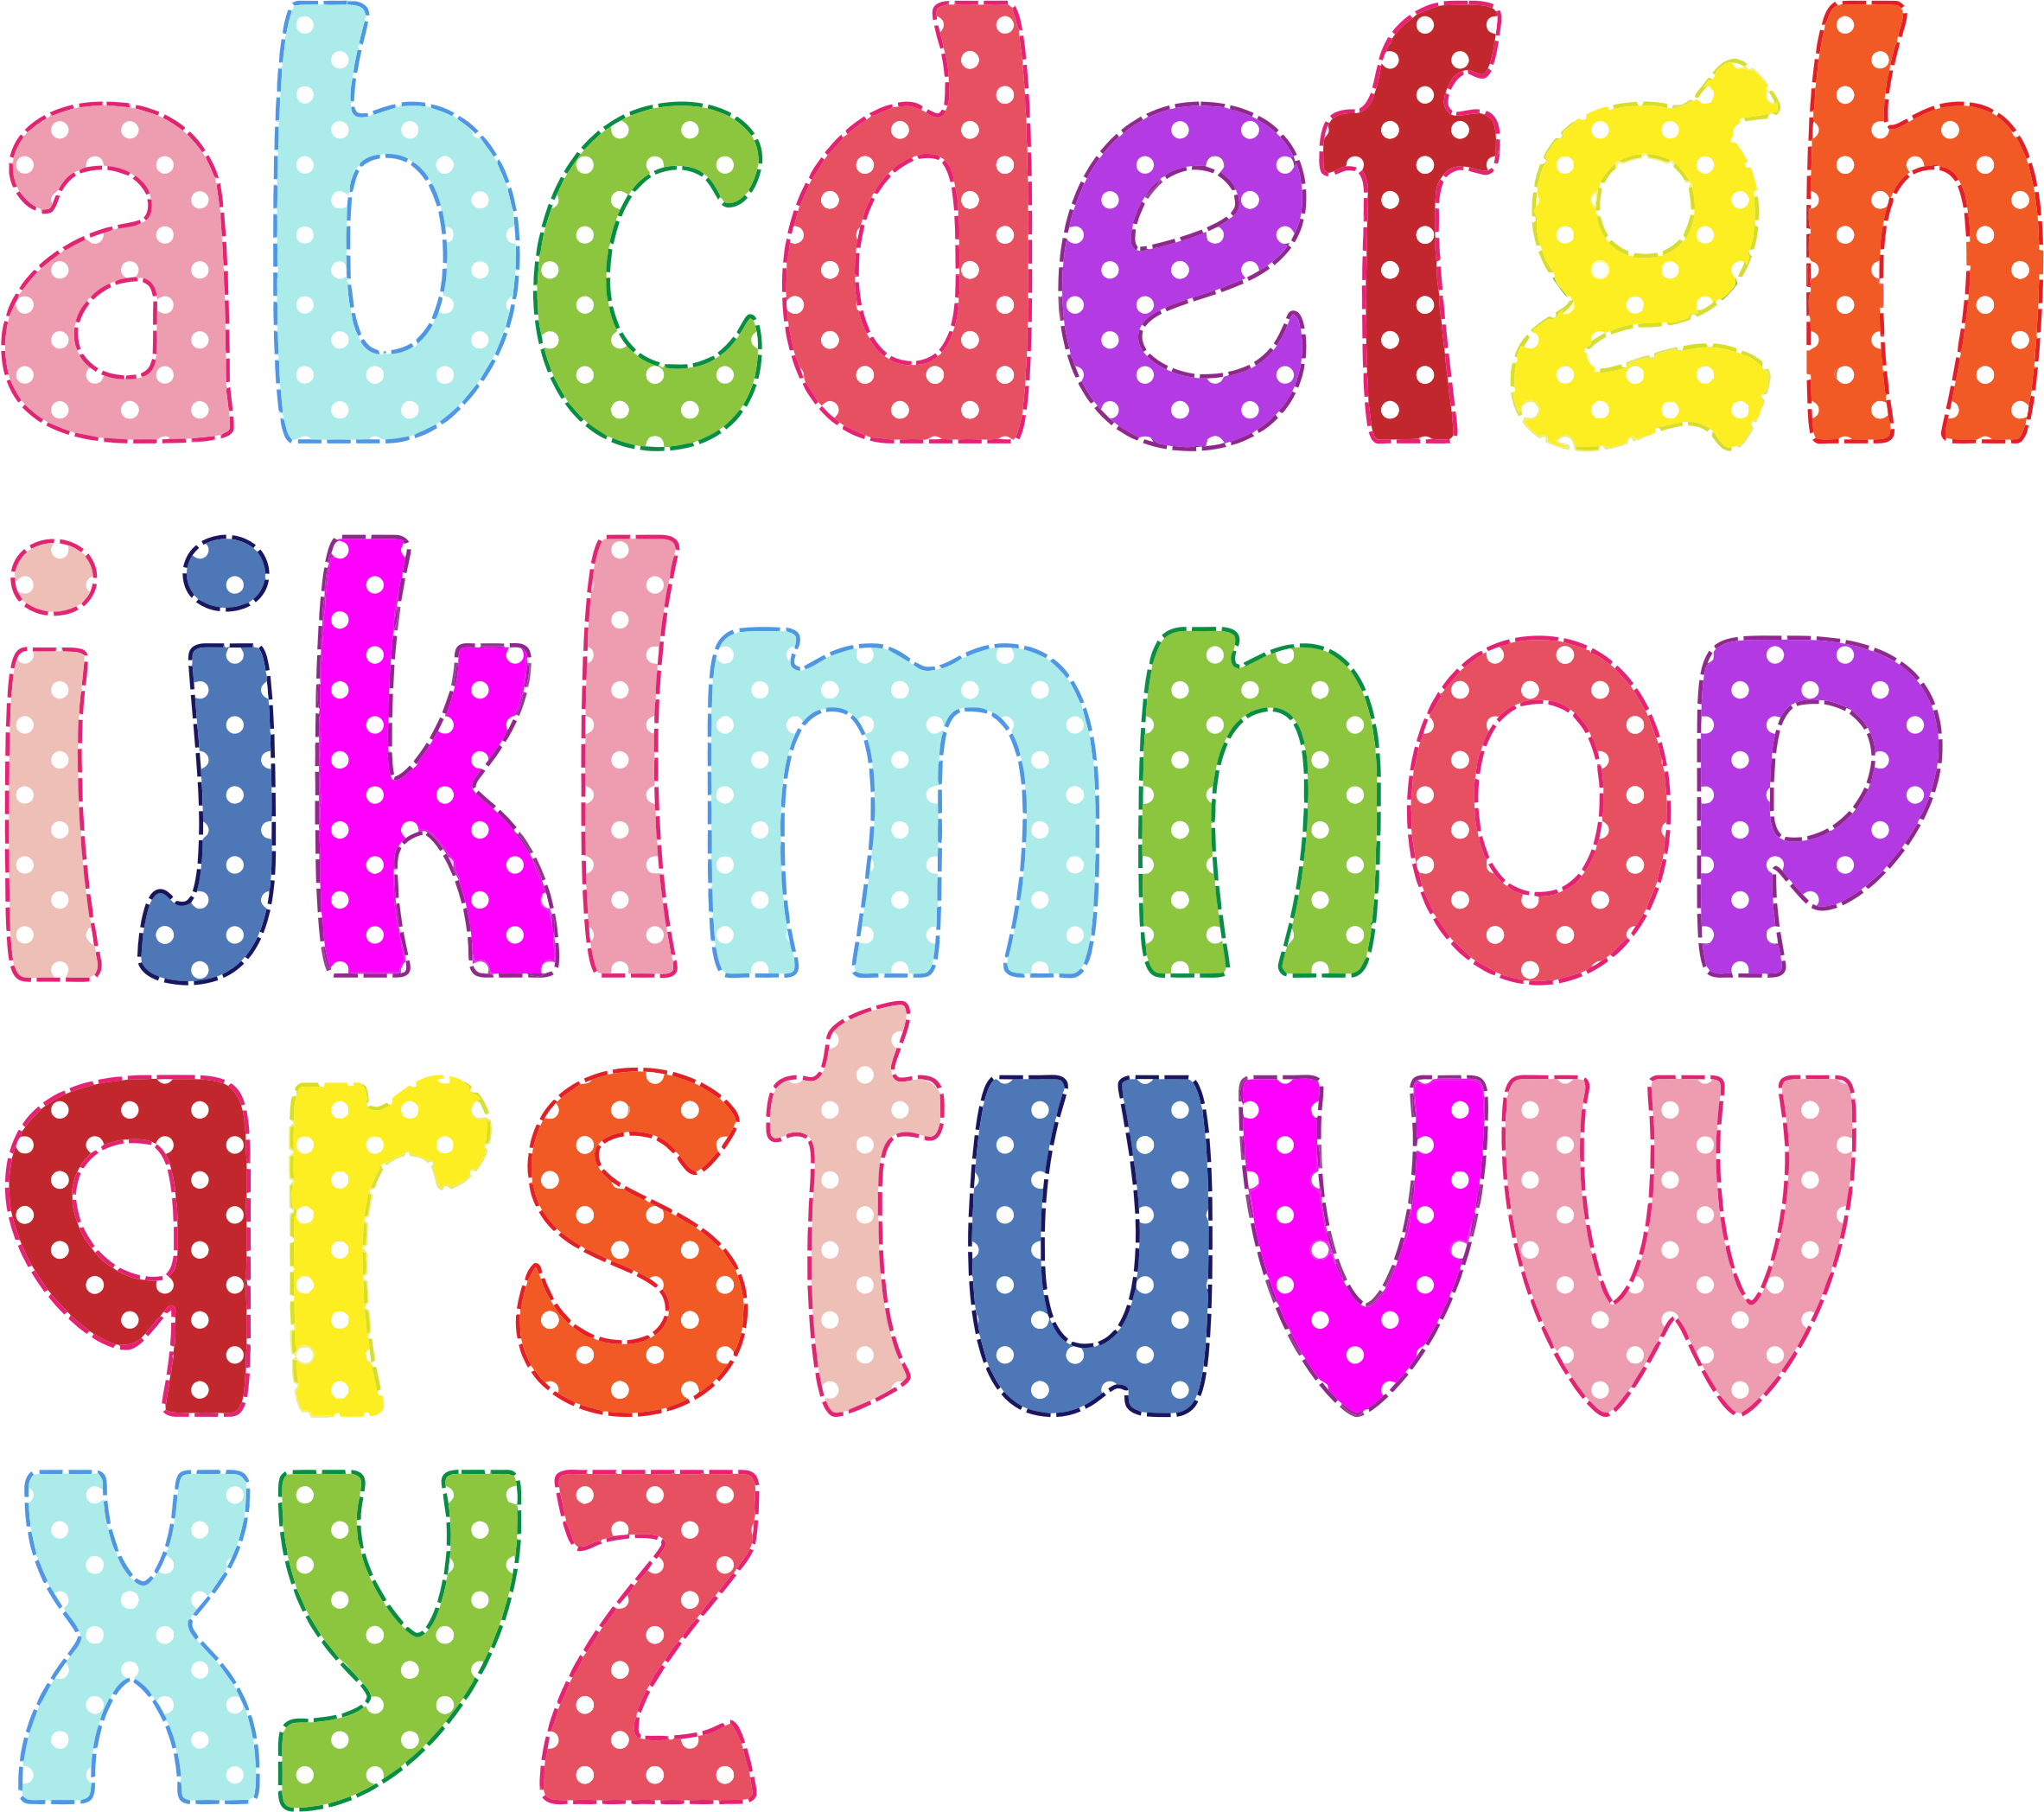 Lowercase letter clipart vector Clipart - Colorful Alphabet Lowercase | letras | Pinterest | Polka ... vector